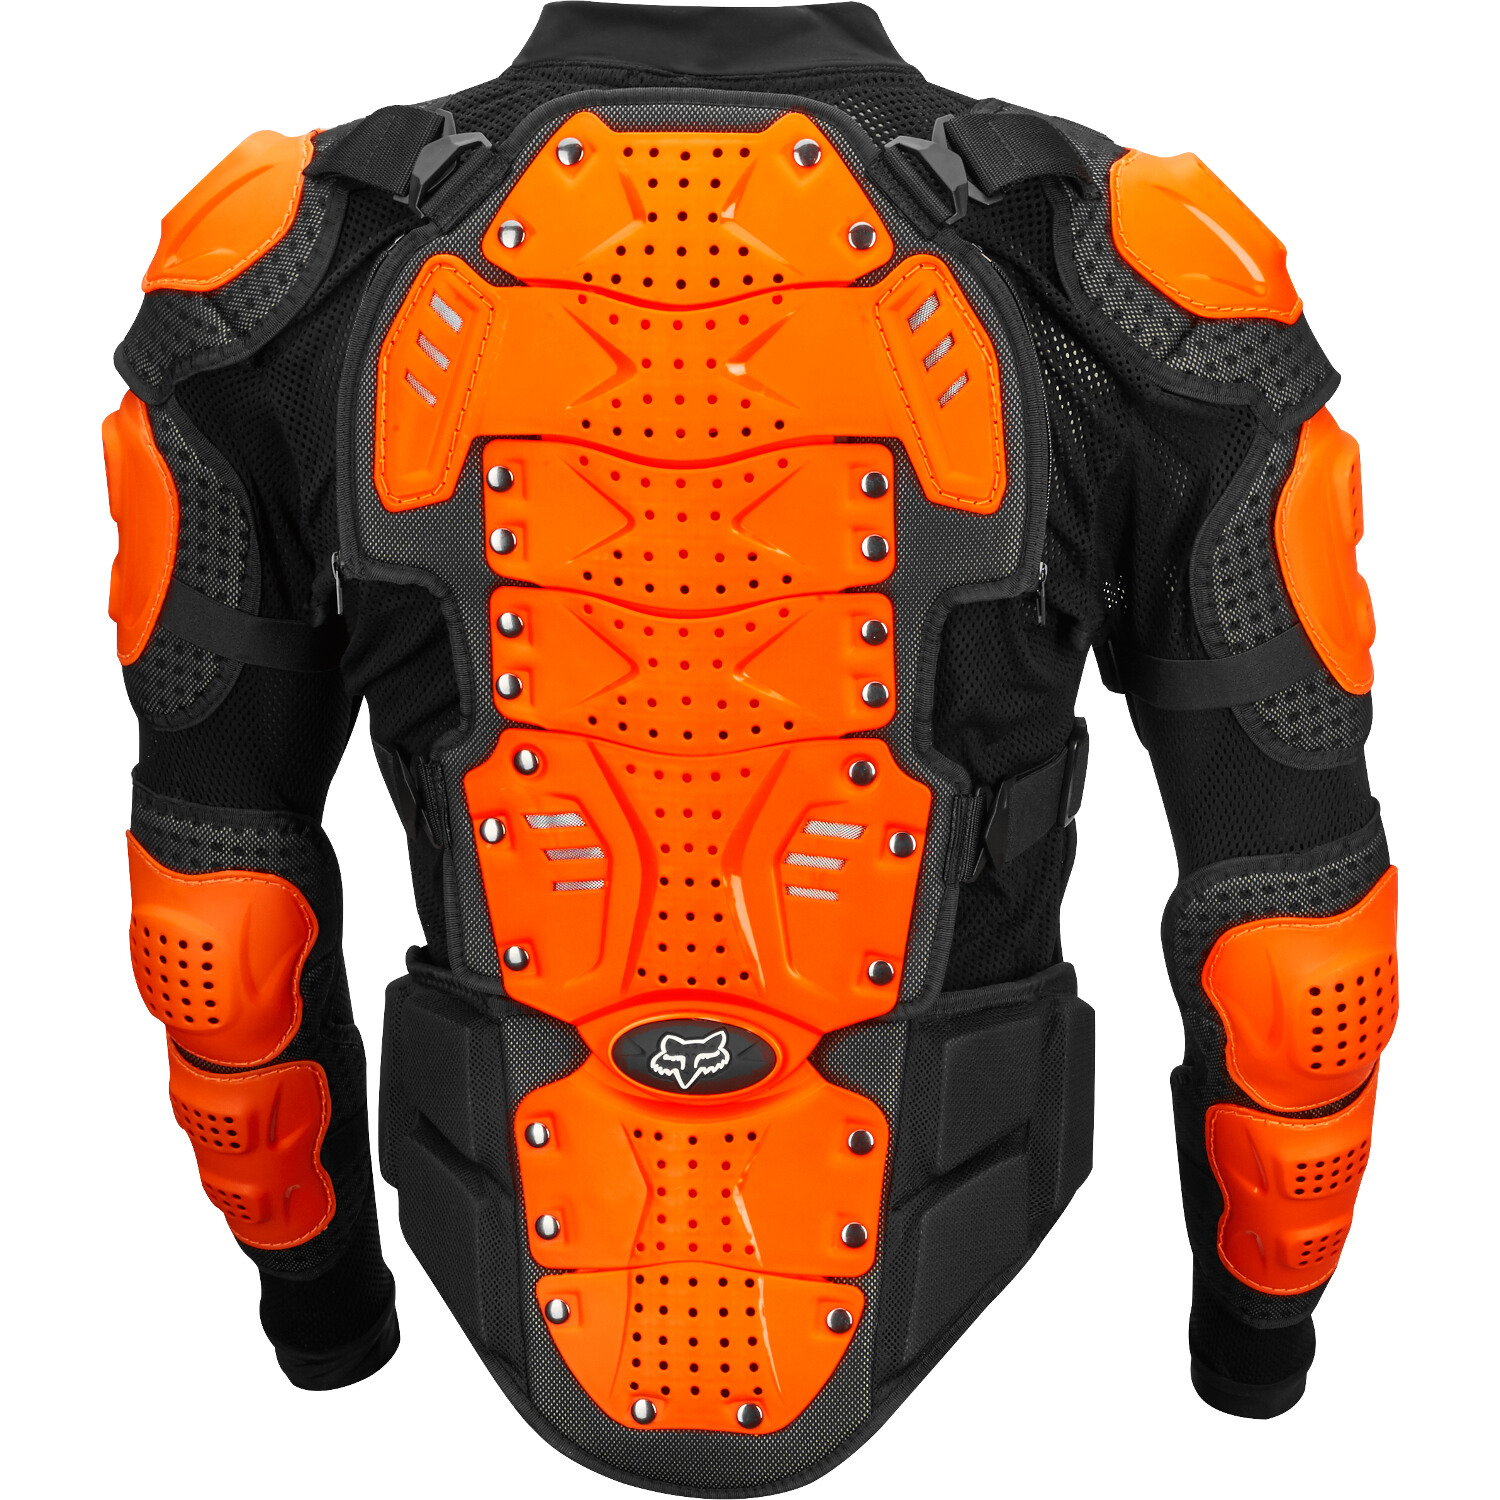 fox titan sport jacket black orange full protection vest Protektorenjacke pare pierre harnas